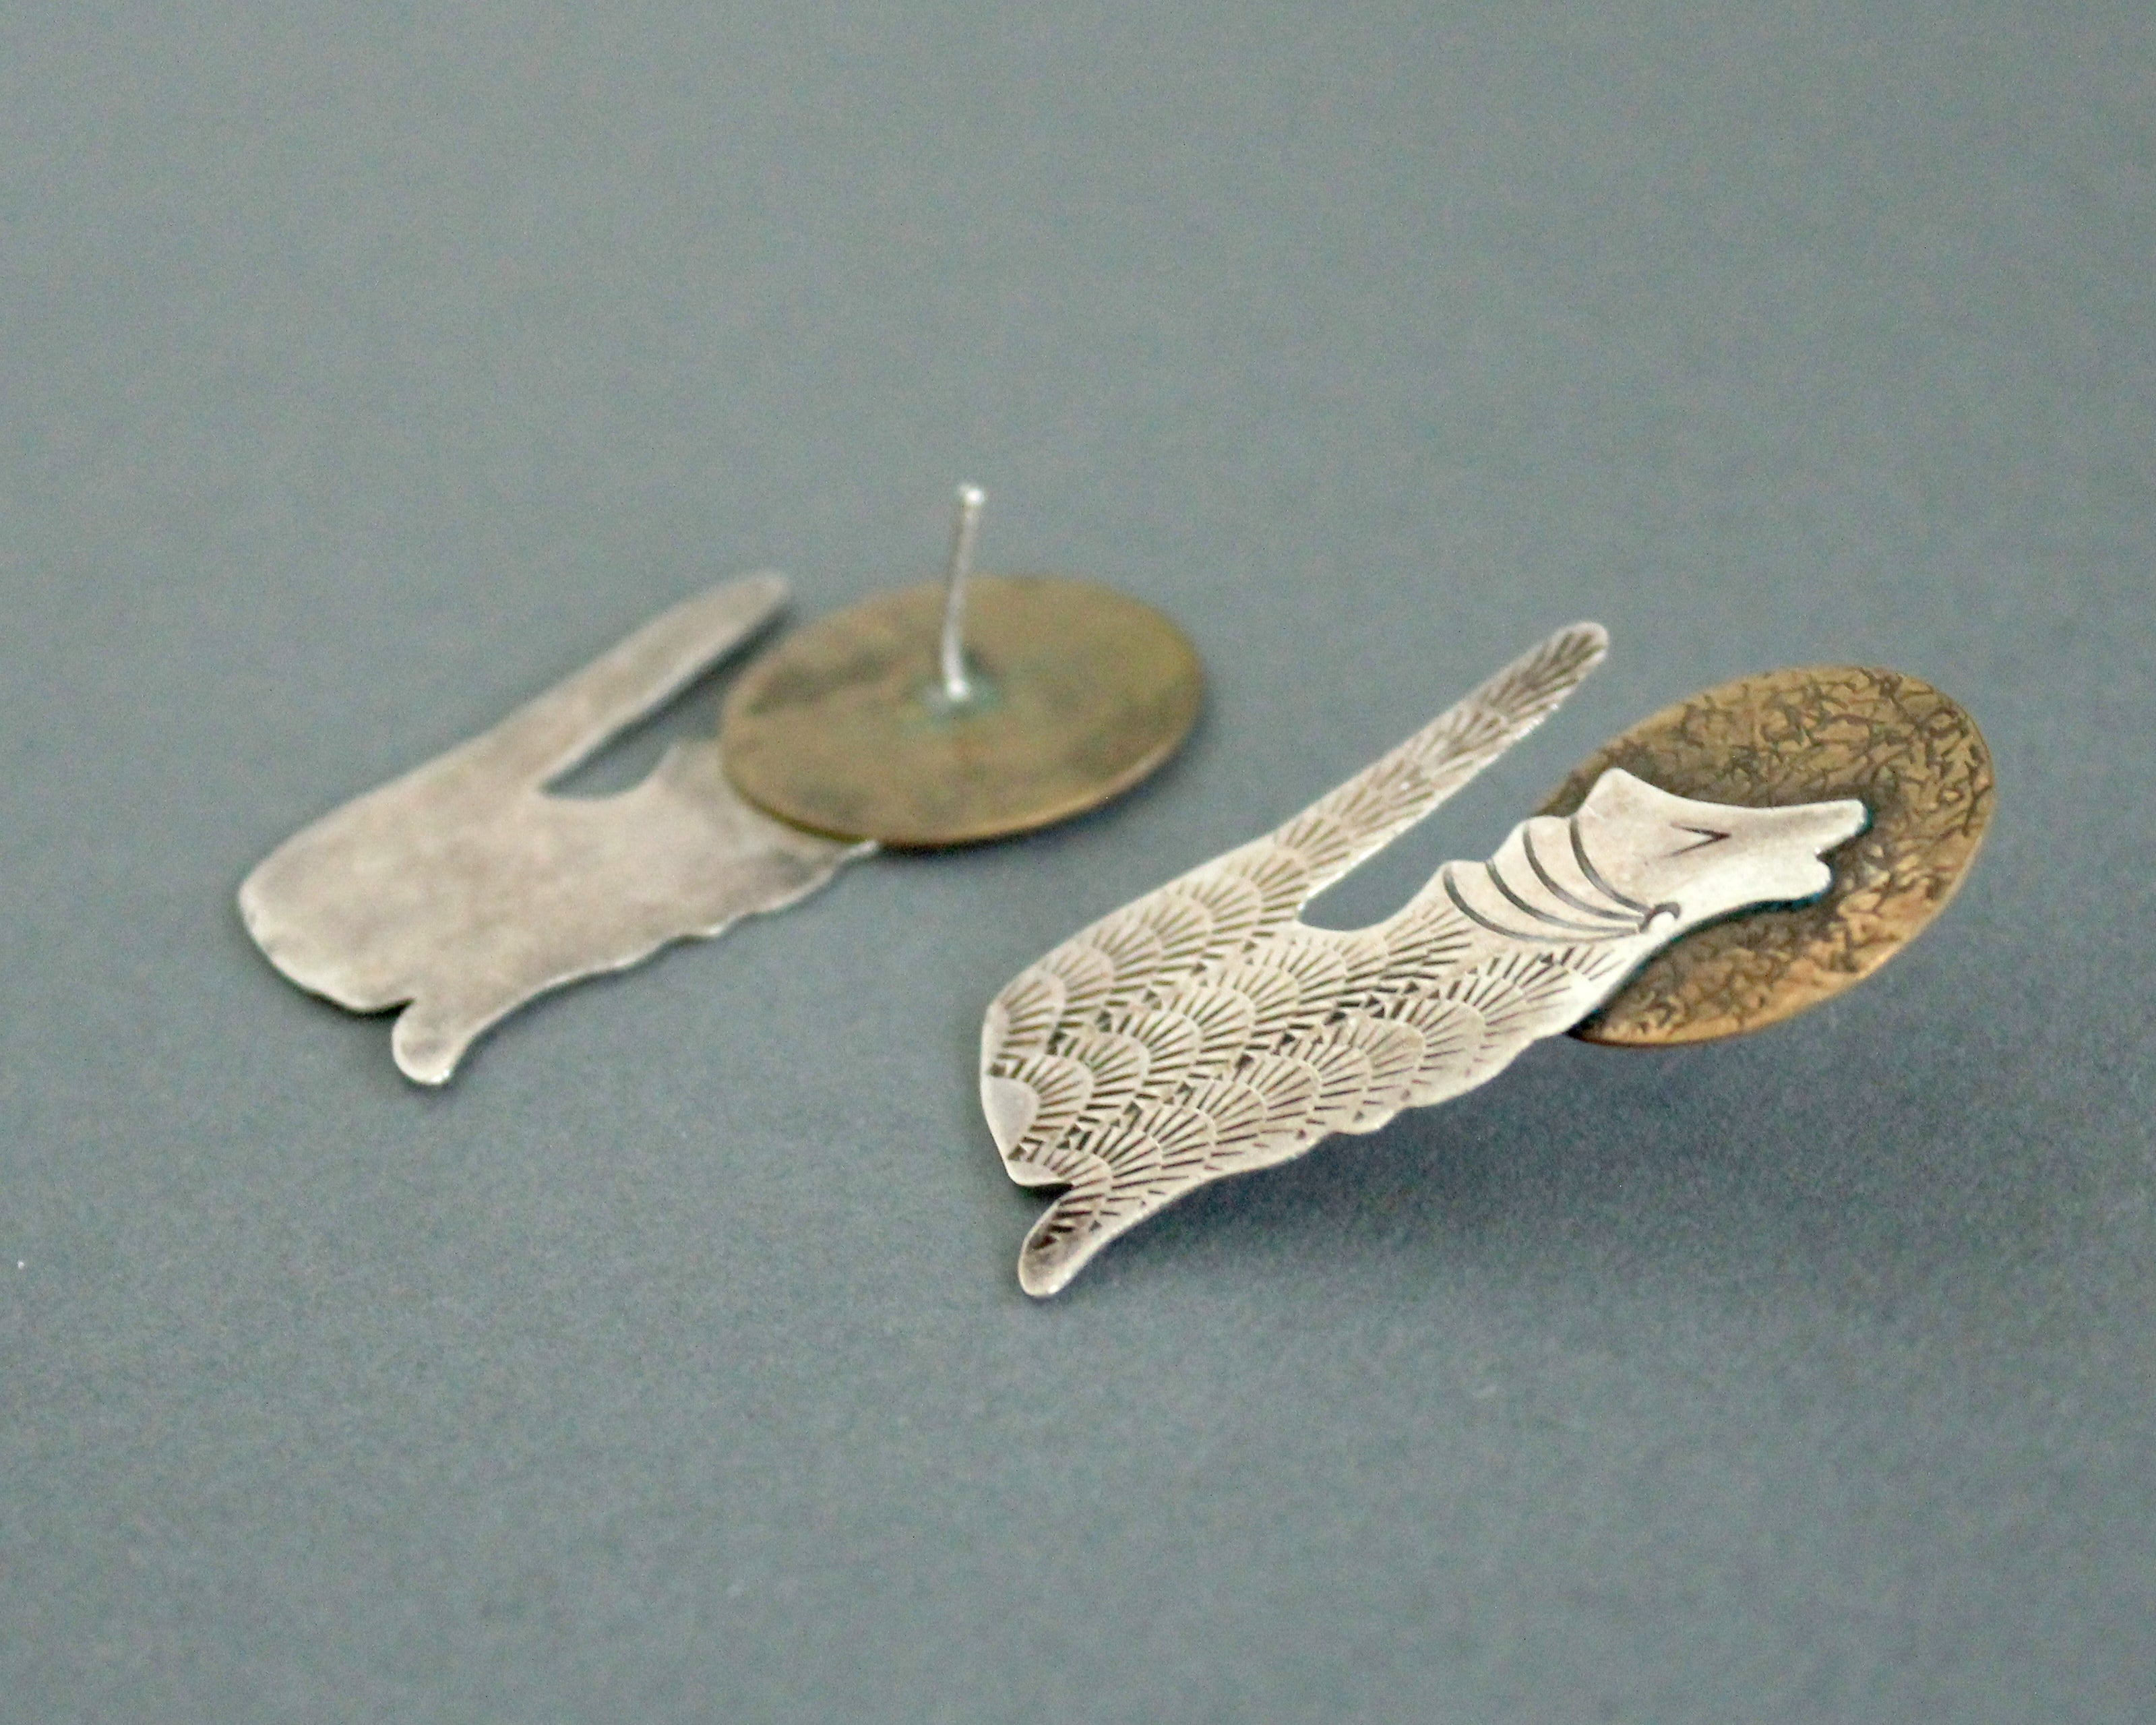 coyote howling at the moon earrings in silver and brass